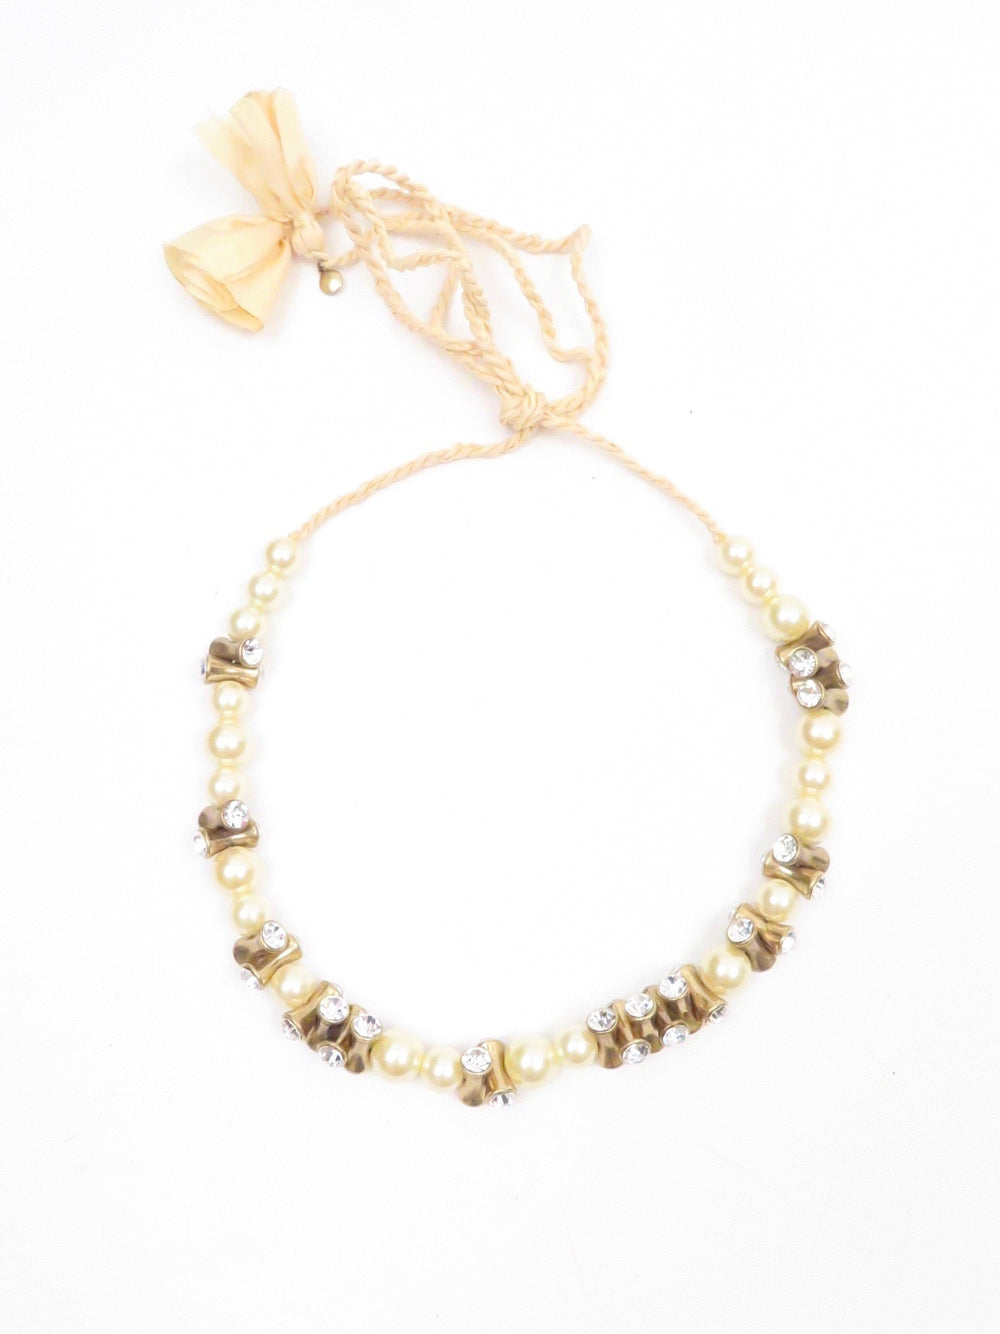 "description: j crew faux pearl rhinestone braided necklace. featuring faux pearl and metal with rhinestone beading. braided ribbon end ties.   color: cream, gold, pearl  size: 53"" length  fabrication: not labeled, unknown meta, rhinestone, possibly silk  condition (all items are secondhand): gently used, pre-owned condition."